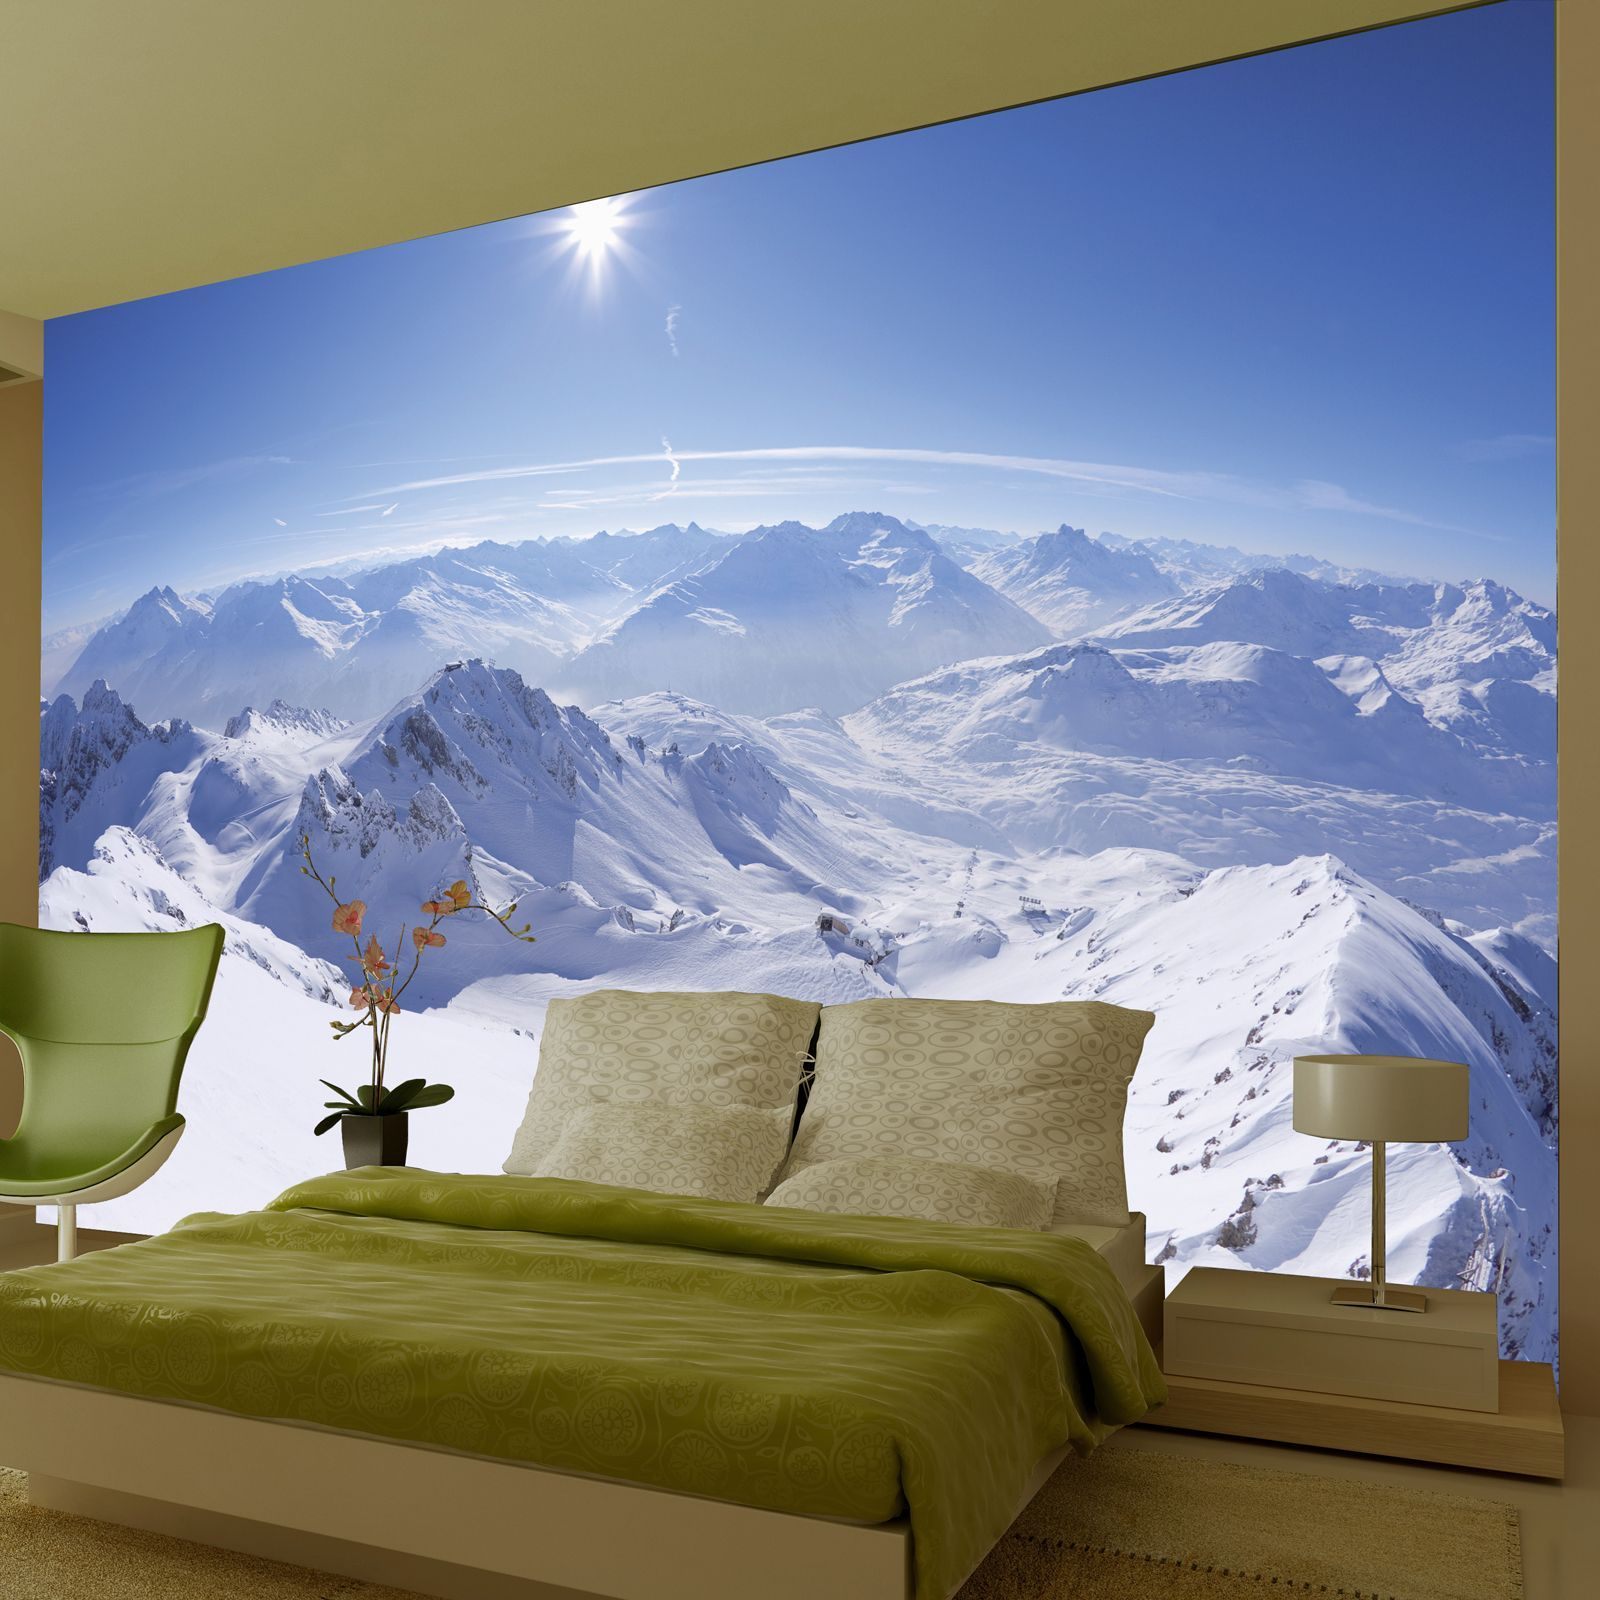 Large wallpaper feature wall murals landscapes for Diy mountain mural